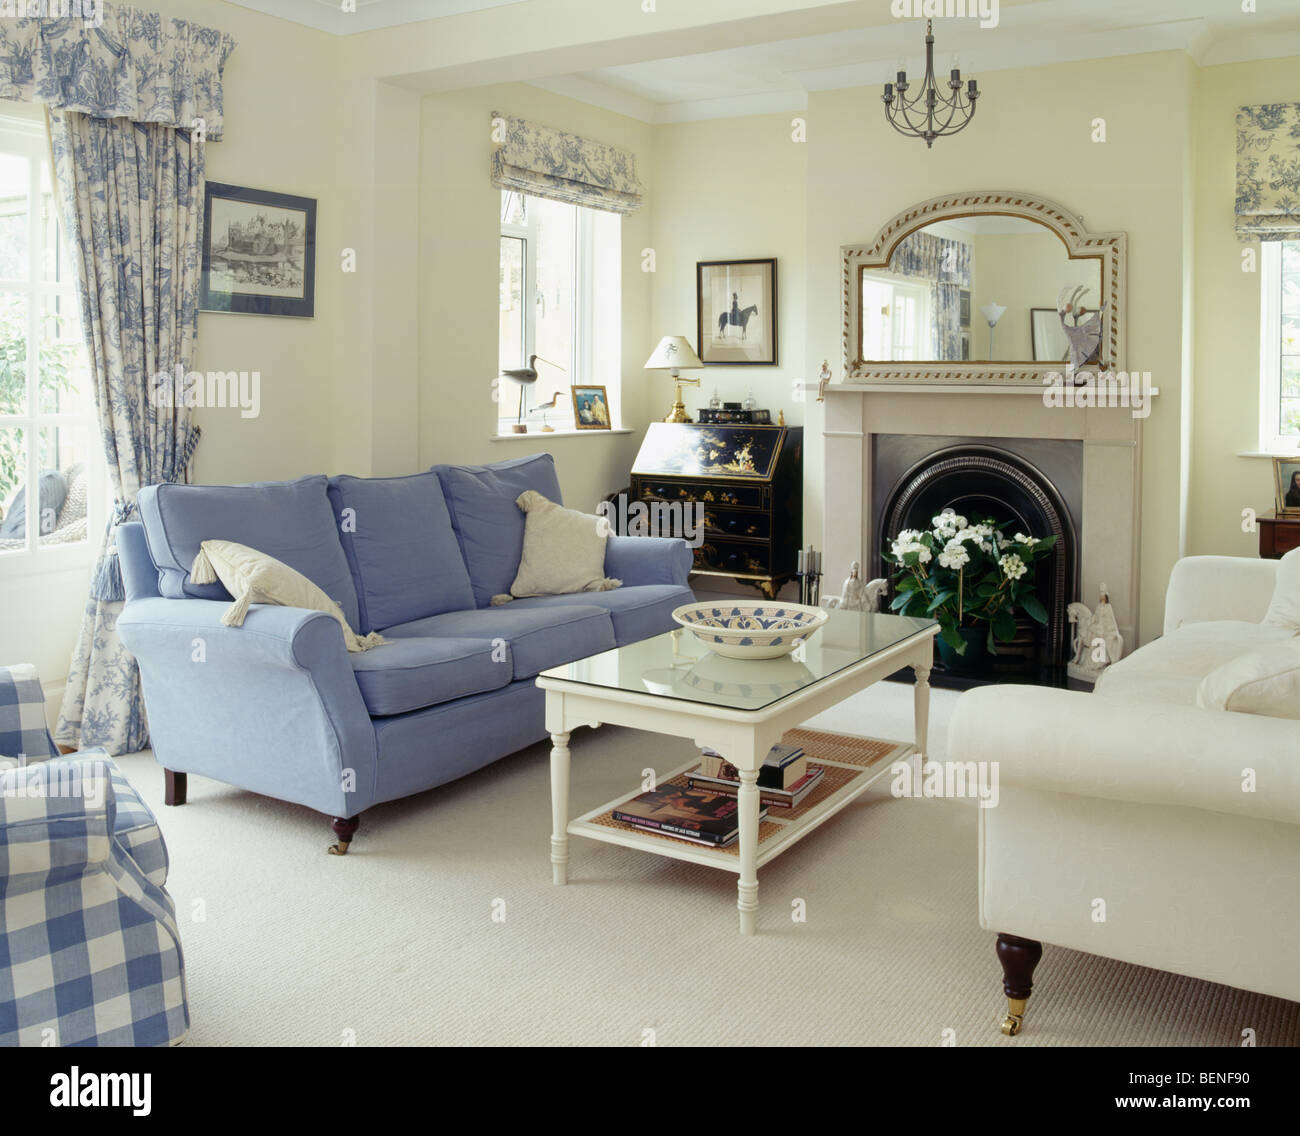 Blue and cream living room - Blue And Cream Sofas On Either Side Of Fireplace In Cream Living